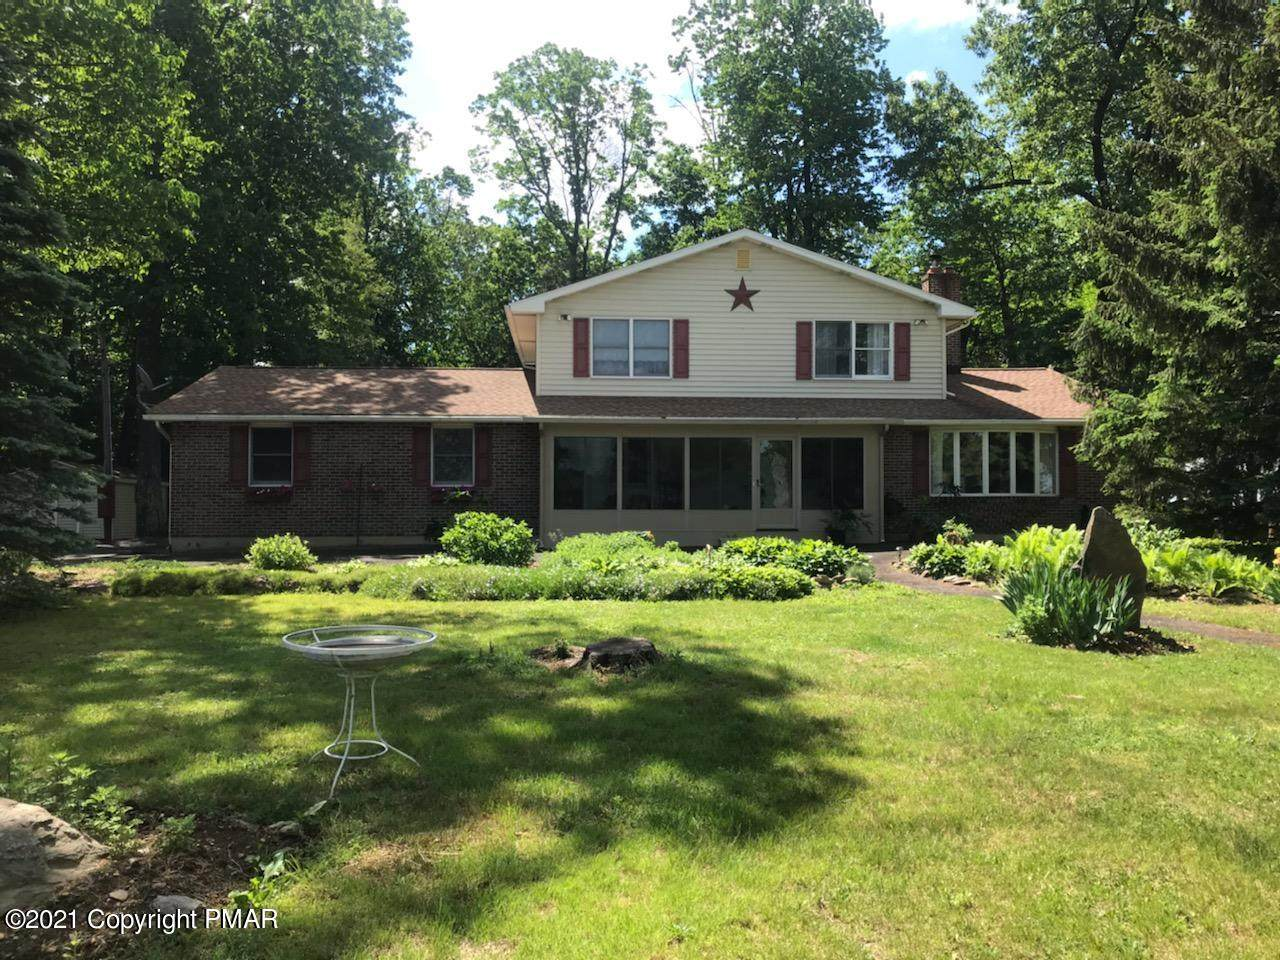 841 Up Hill Rd - Photo 1